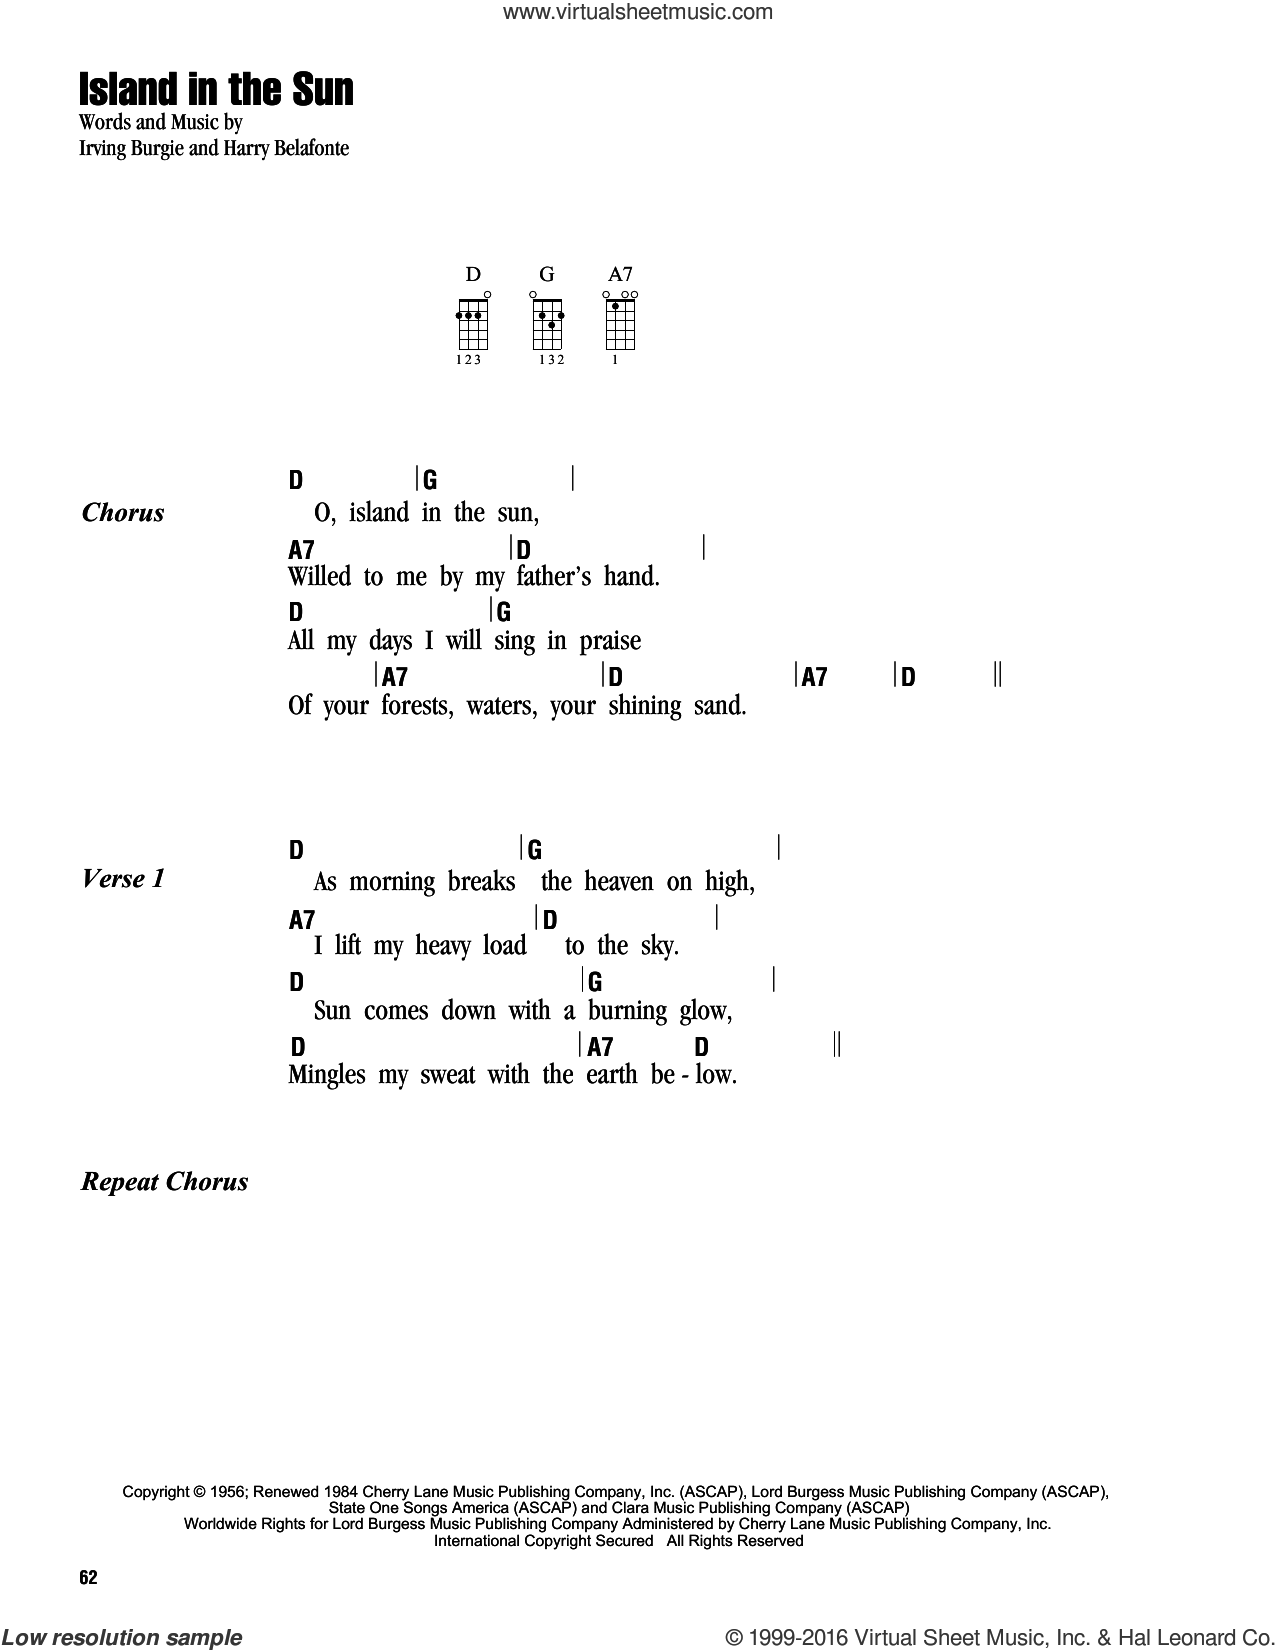 Belafonte island in the sun sheet music for ukulele chords island in the sun sheet music for ukulele chords by harry belafonte and irving hexwebz Image collections